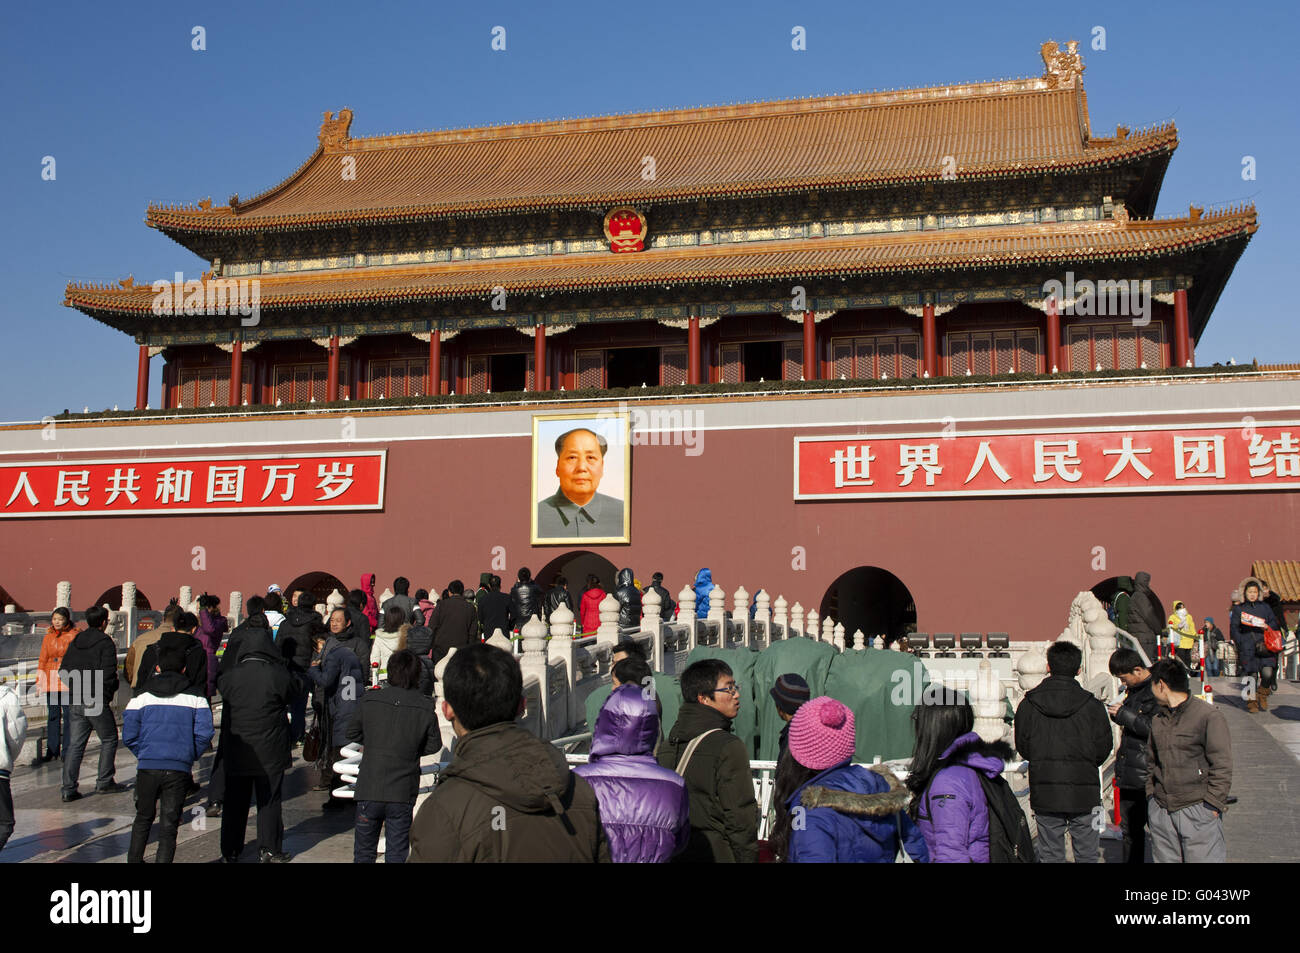 Crowd of tourists at the Tiananmen Gate, Beijing - Stock Image